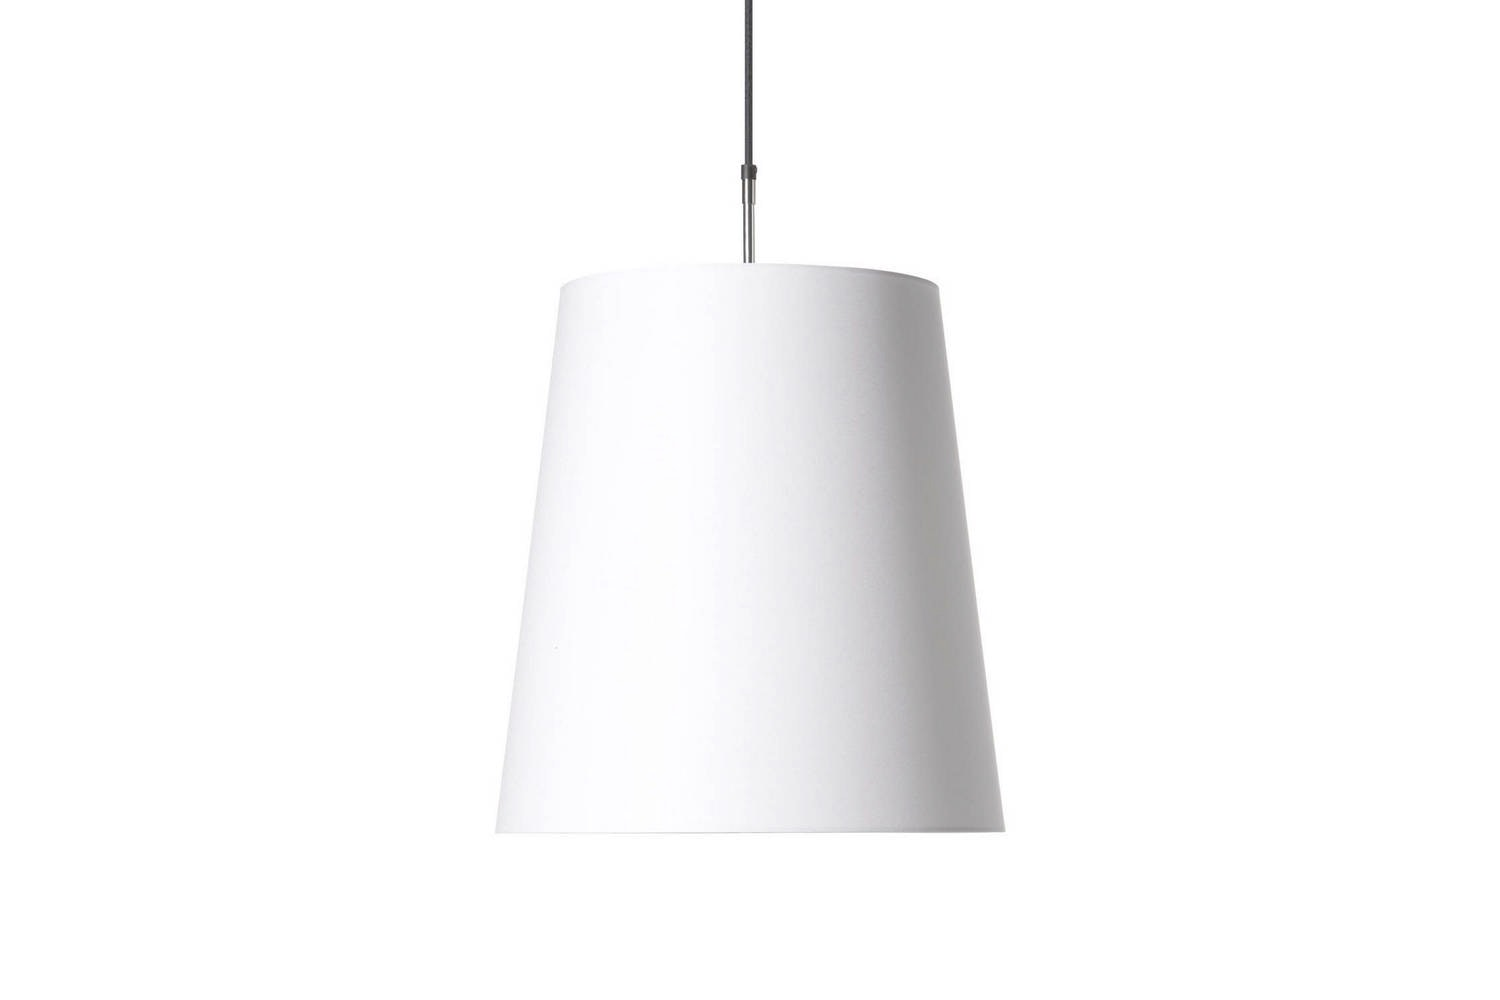 Round Light Suspension Lamp by Marcel Wanders for Moooi